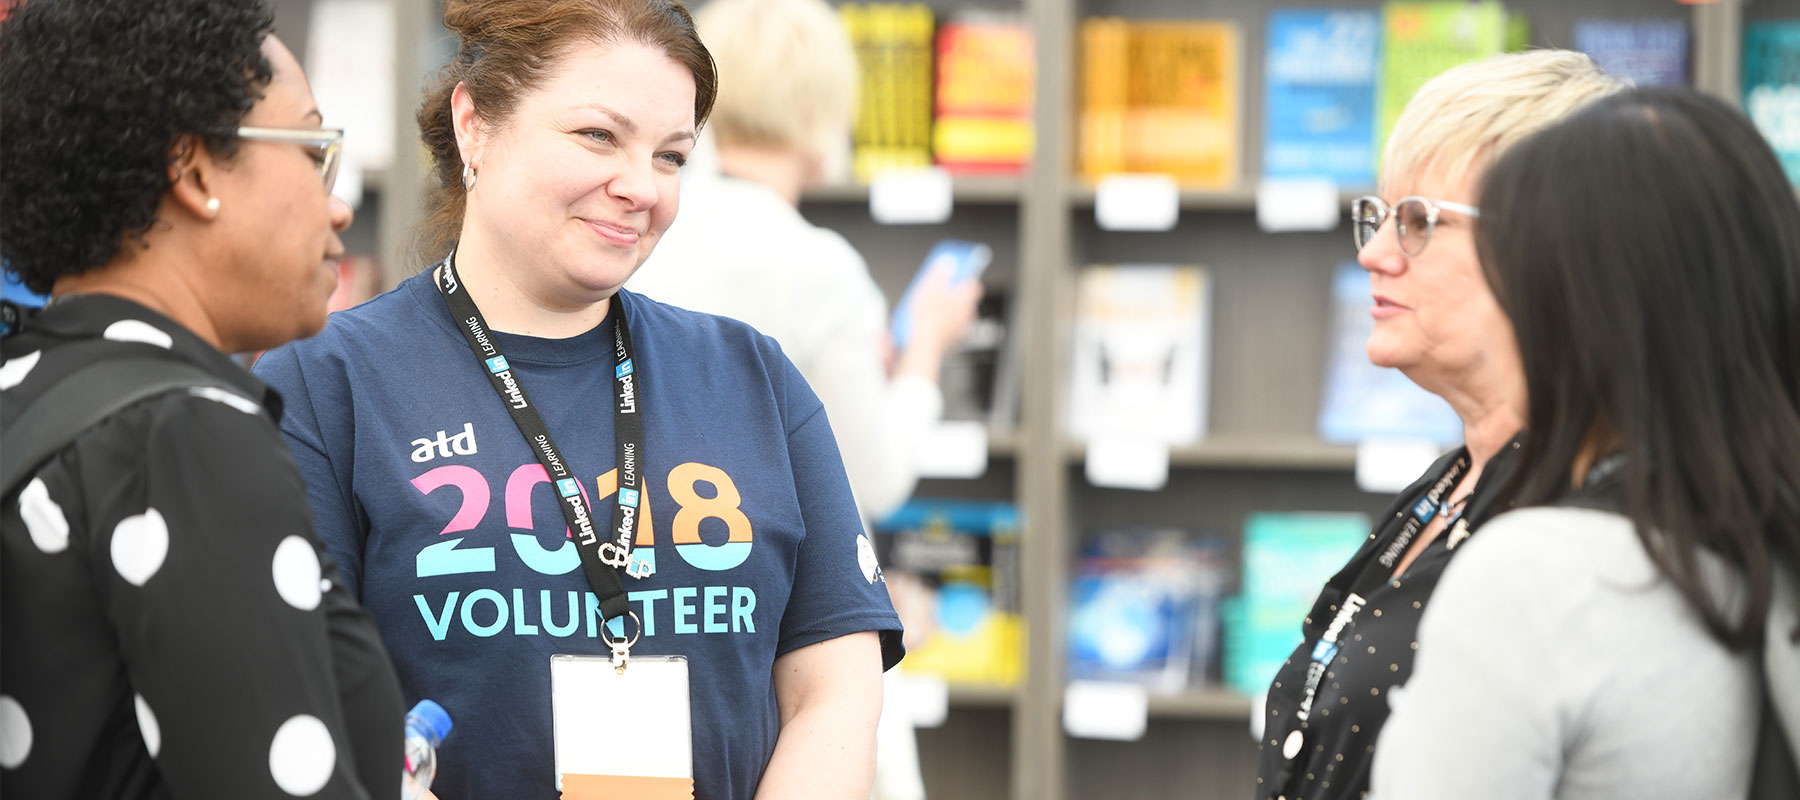 Volunteer-Shirt_1_1800x800.jpg